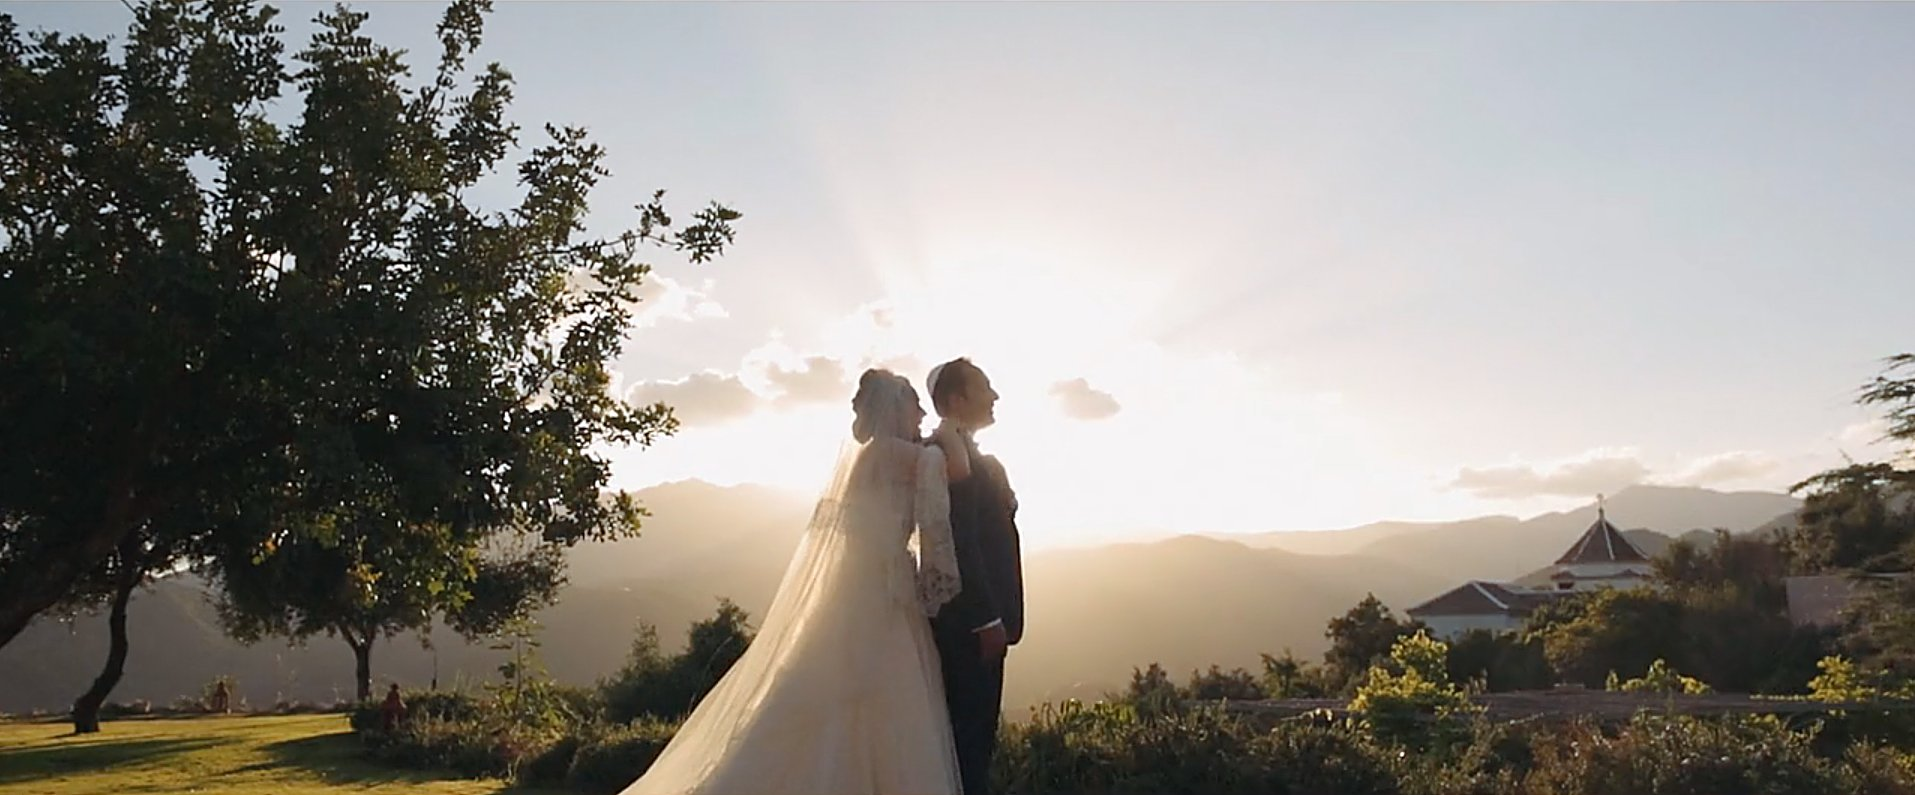 Wedding Videographers Andalusia